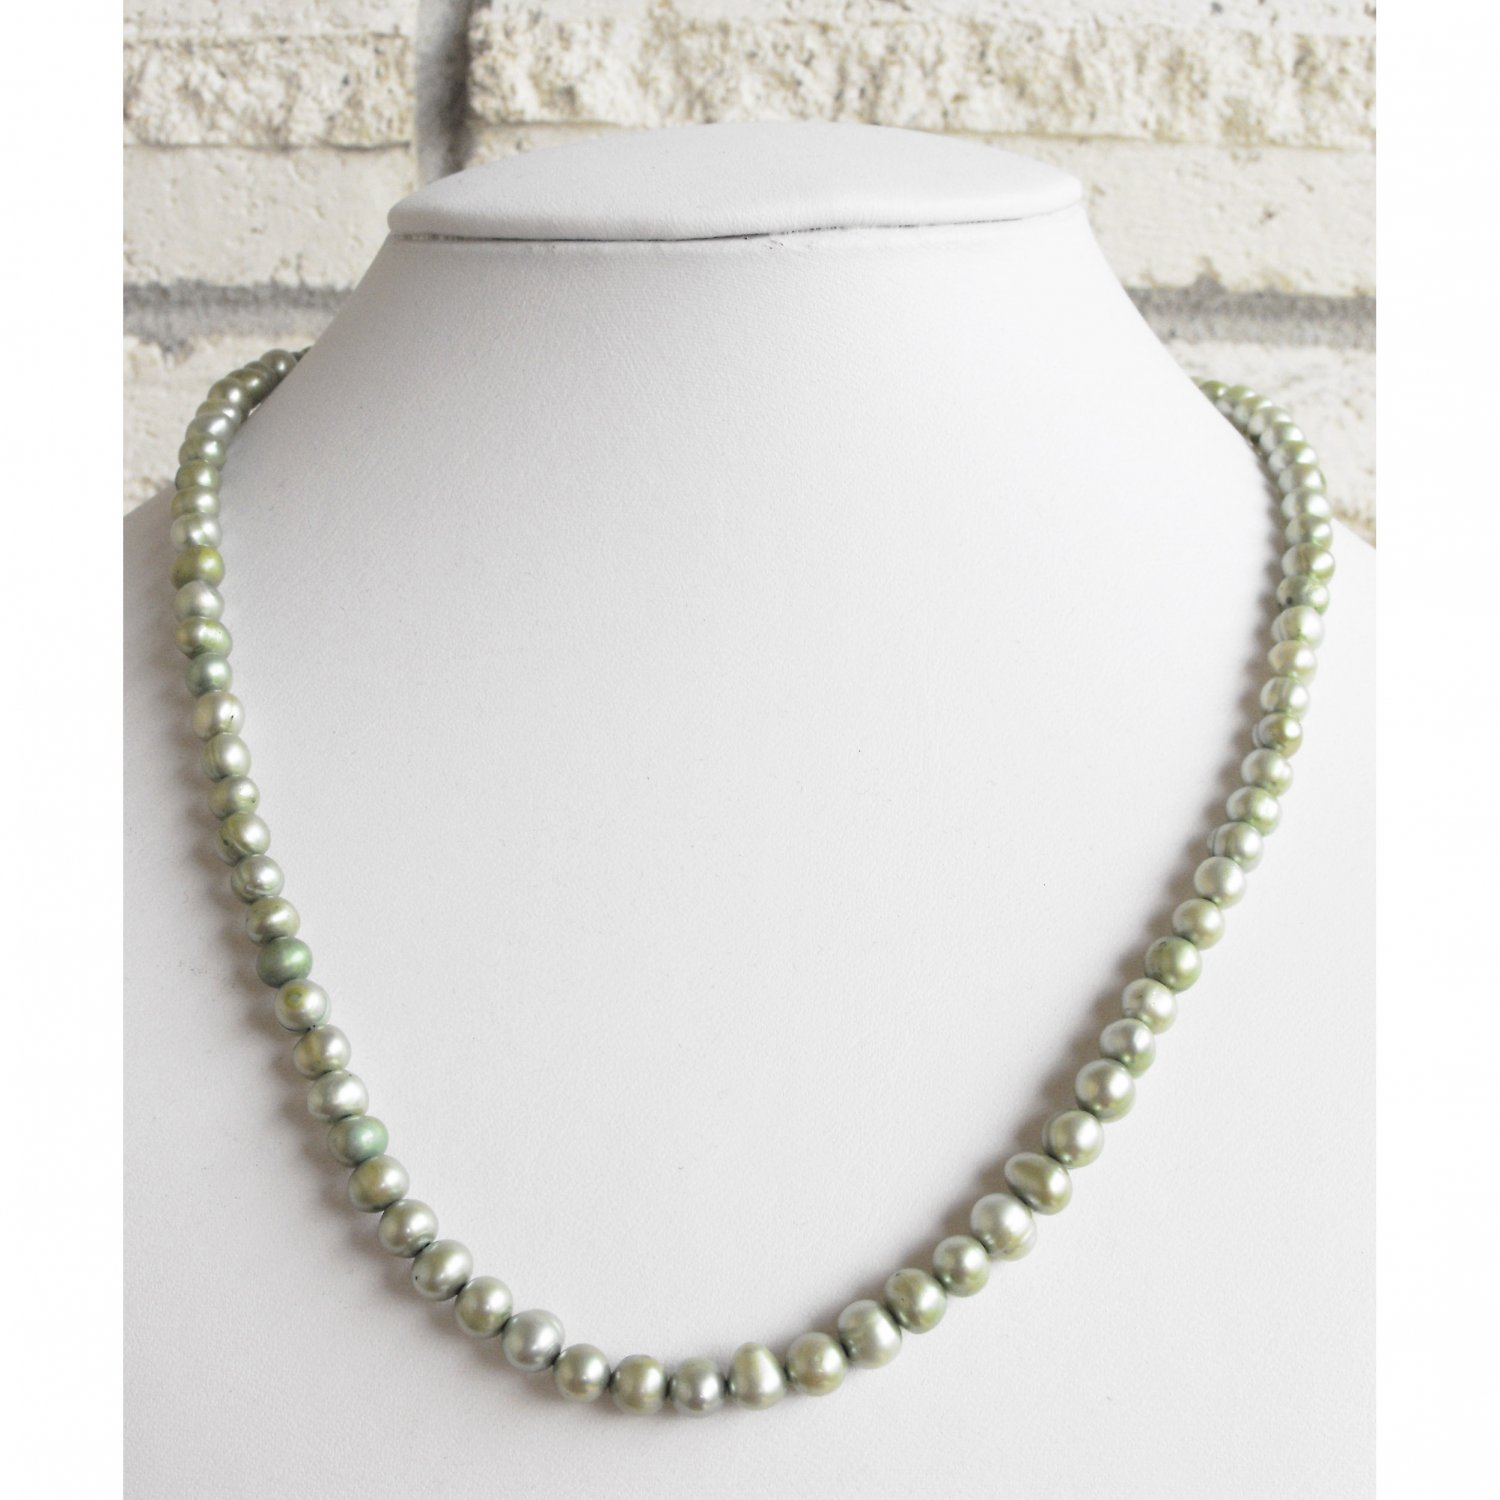 Green Freshwater Pearl Necklace